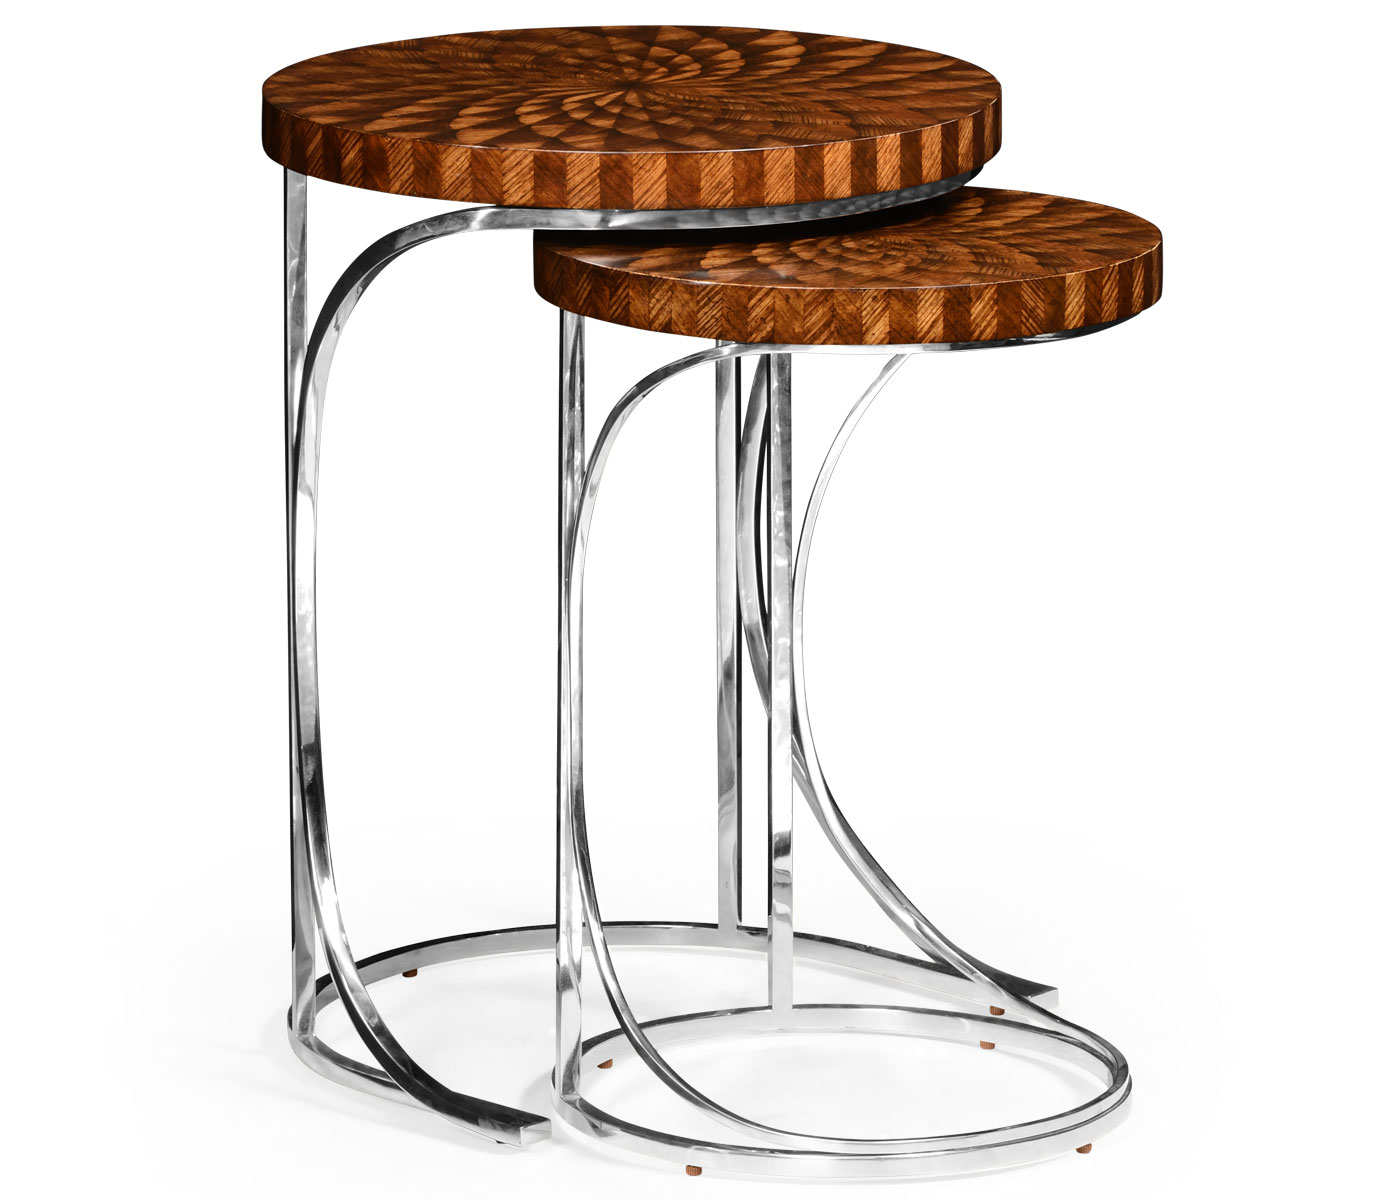 leather pouf the fantastic nice inlaid wood end tables nesting zebrano side table zebra limited production design tall marquetry hospitality residential interior designer